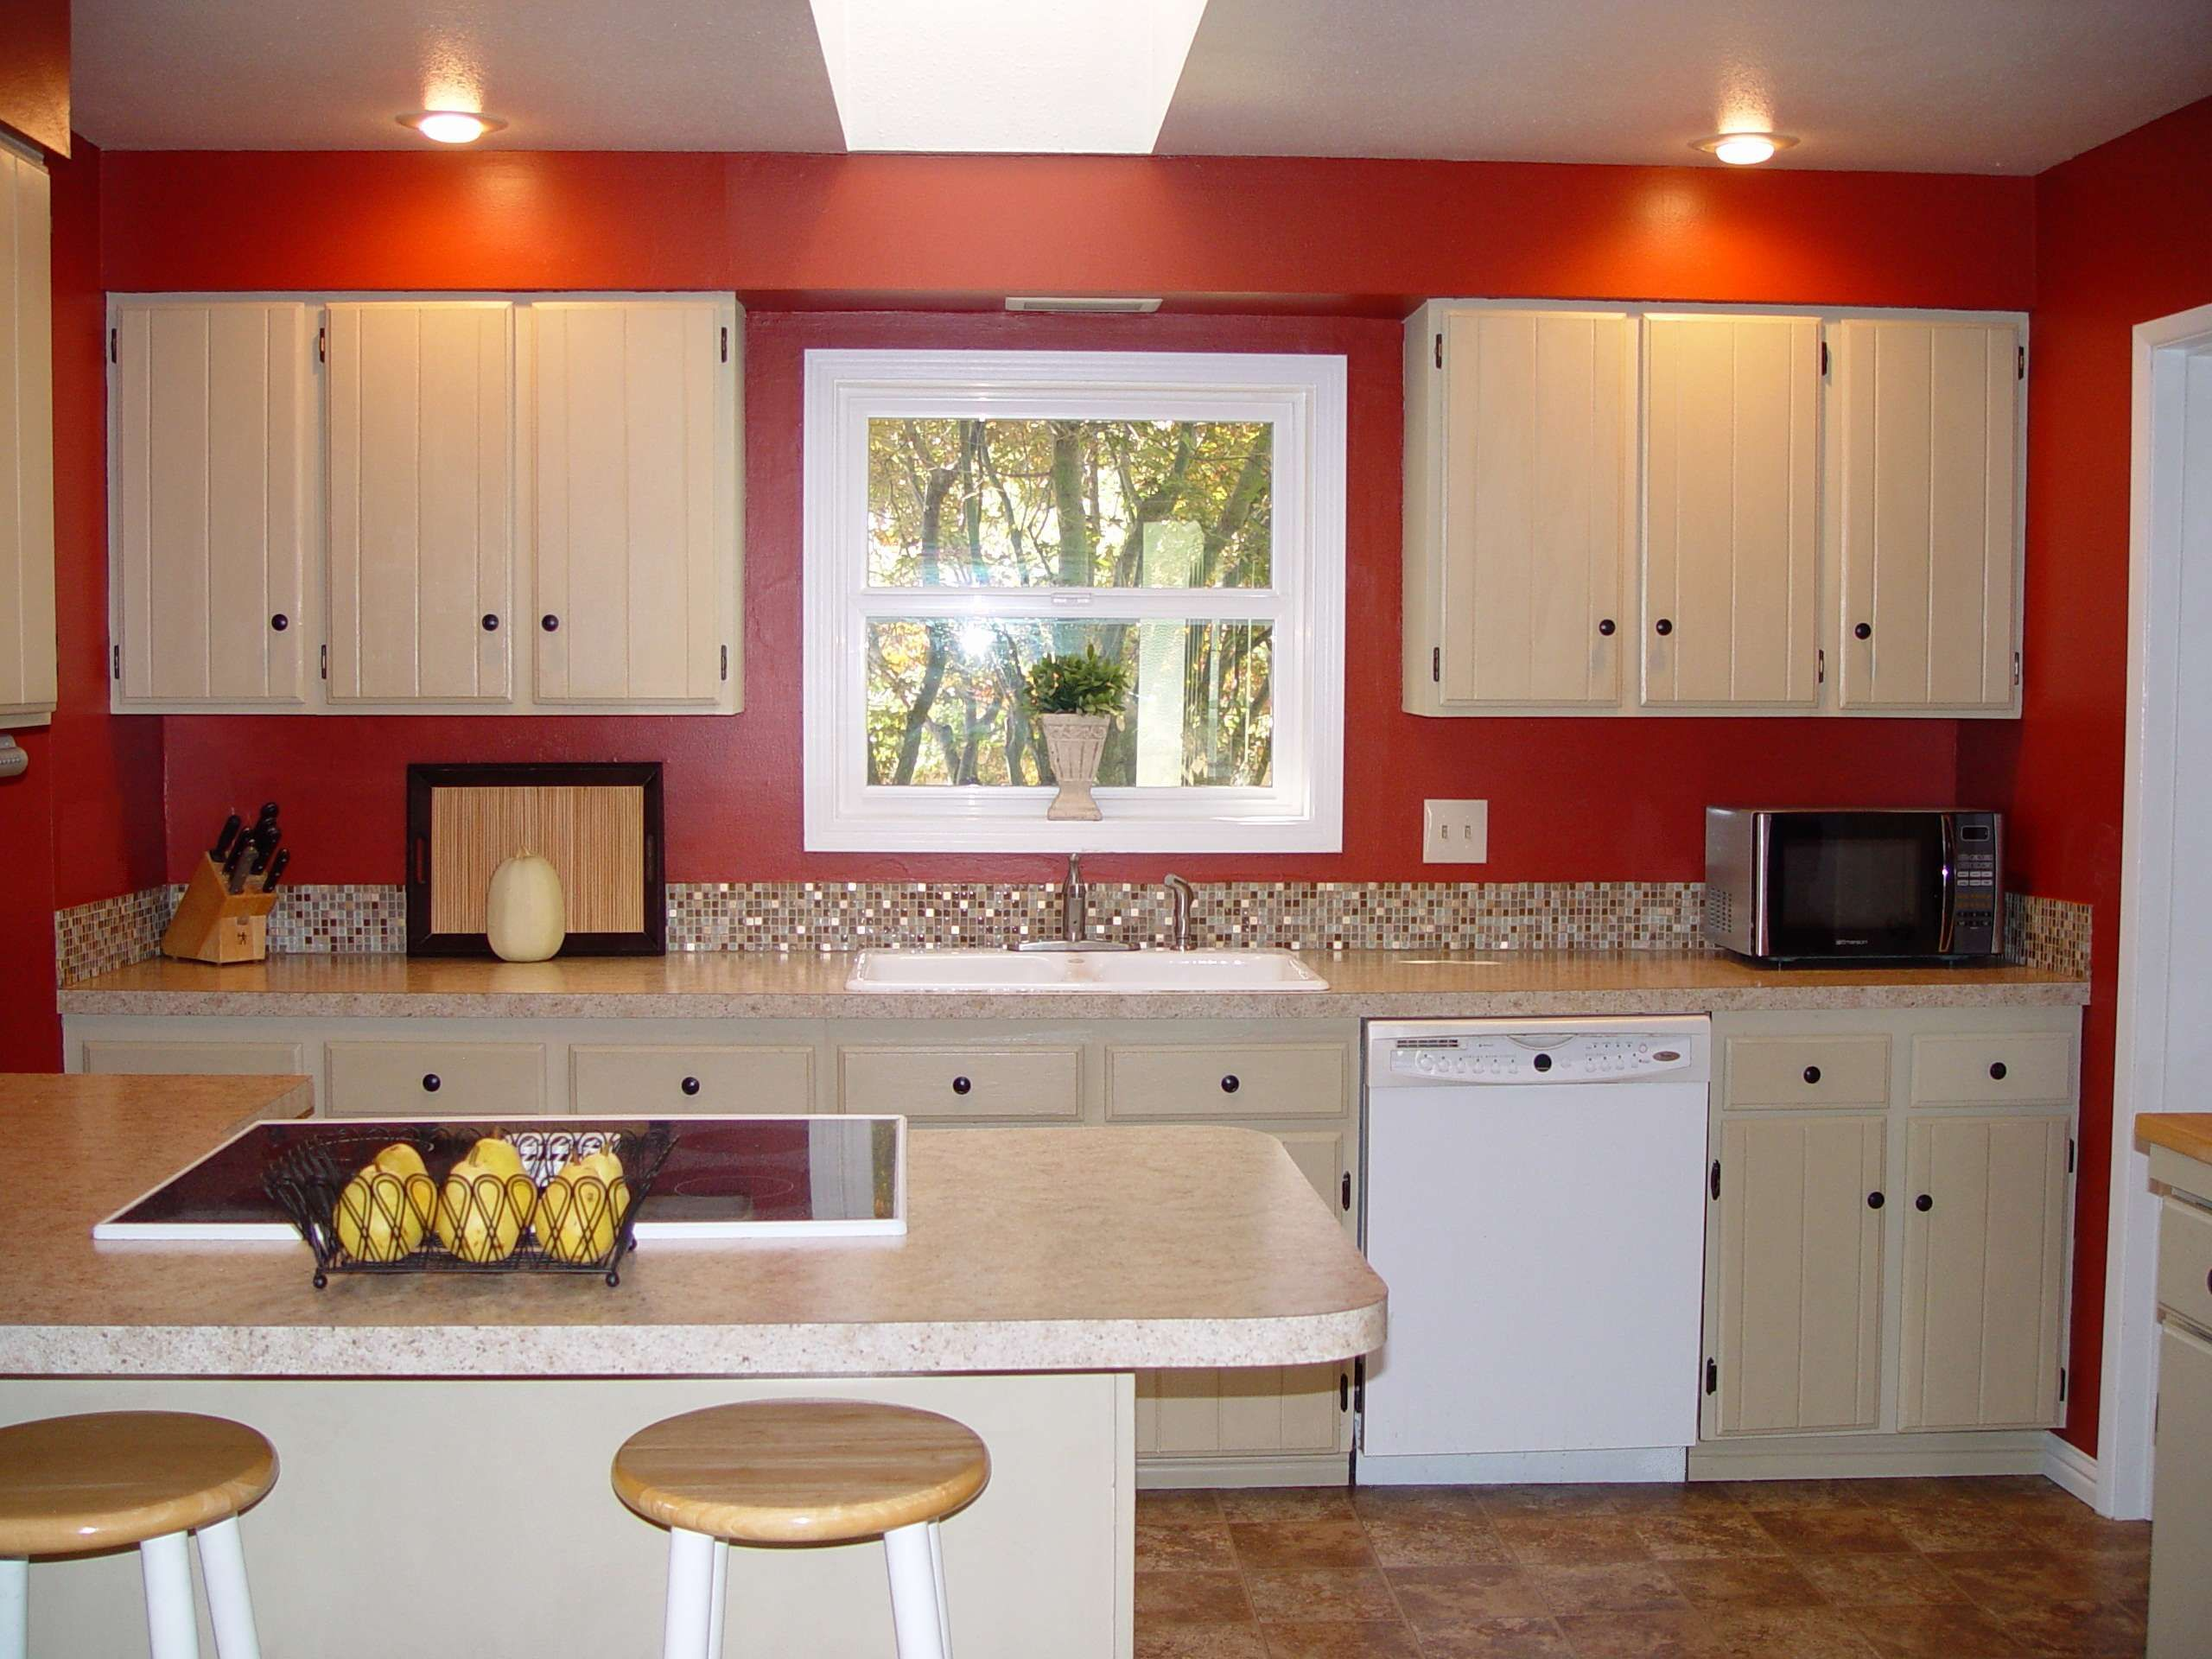 Red Gloss Kitchen Cabinets Elegant High Gloss Cabinets Kitchen Red Kitchen Cabinets Ikea Ikea Kitchen Red Kitchen Walls Red Kitchen Kitchen Colors